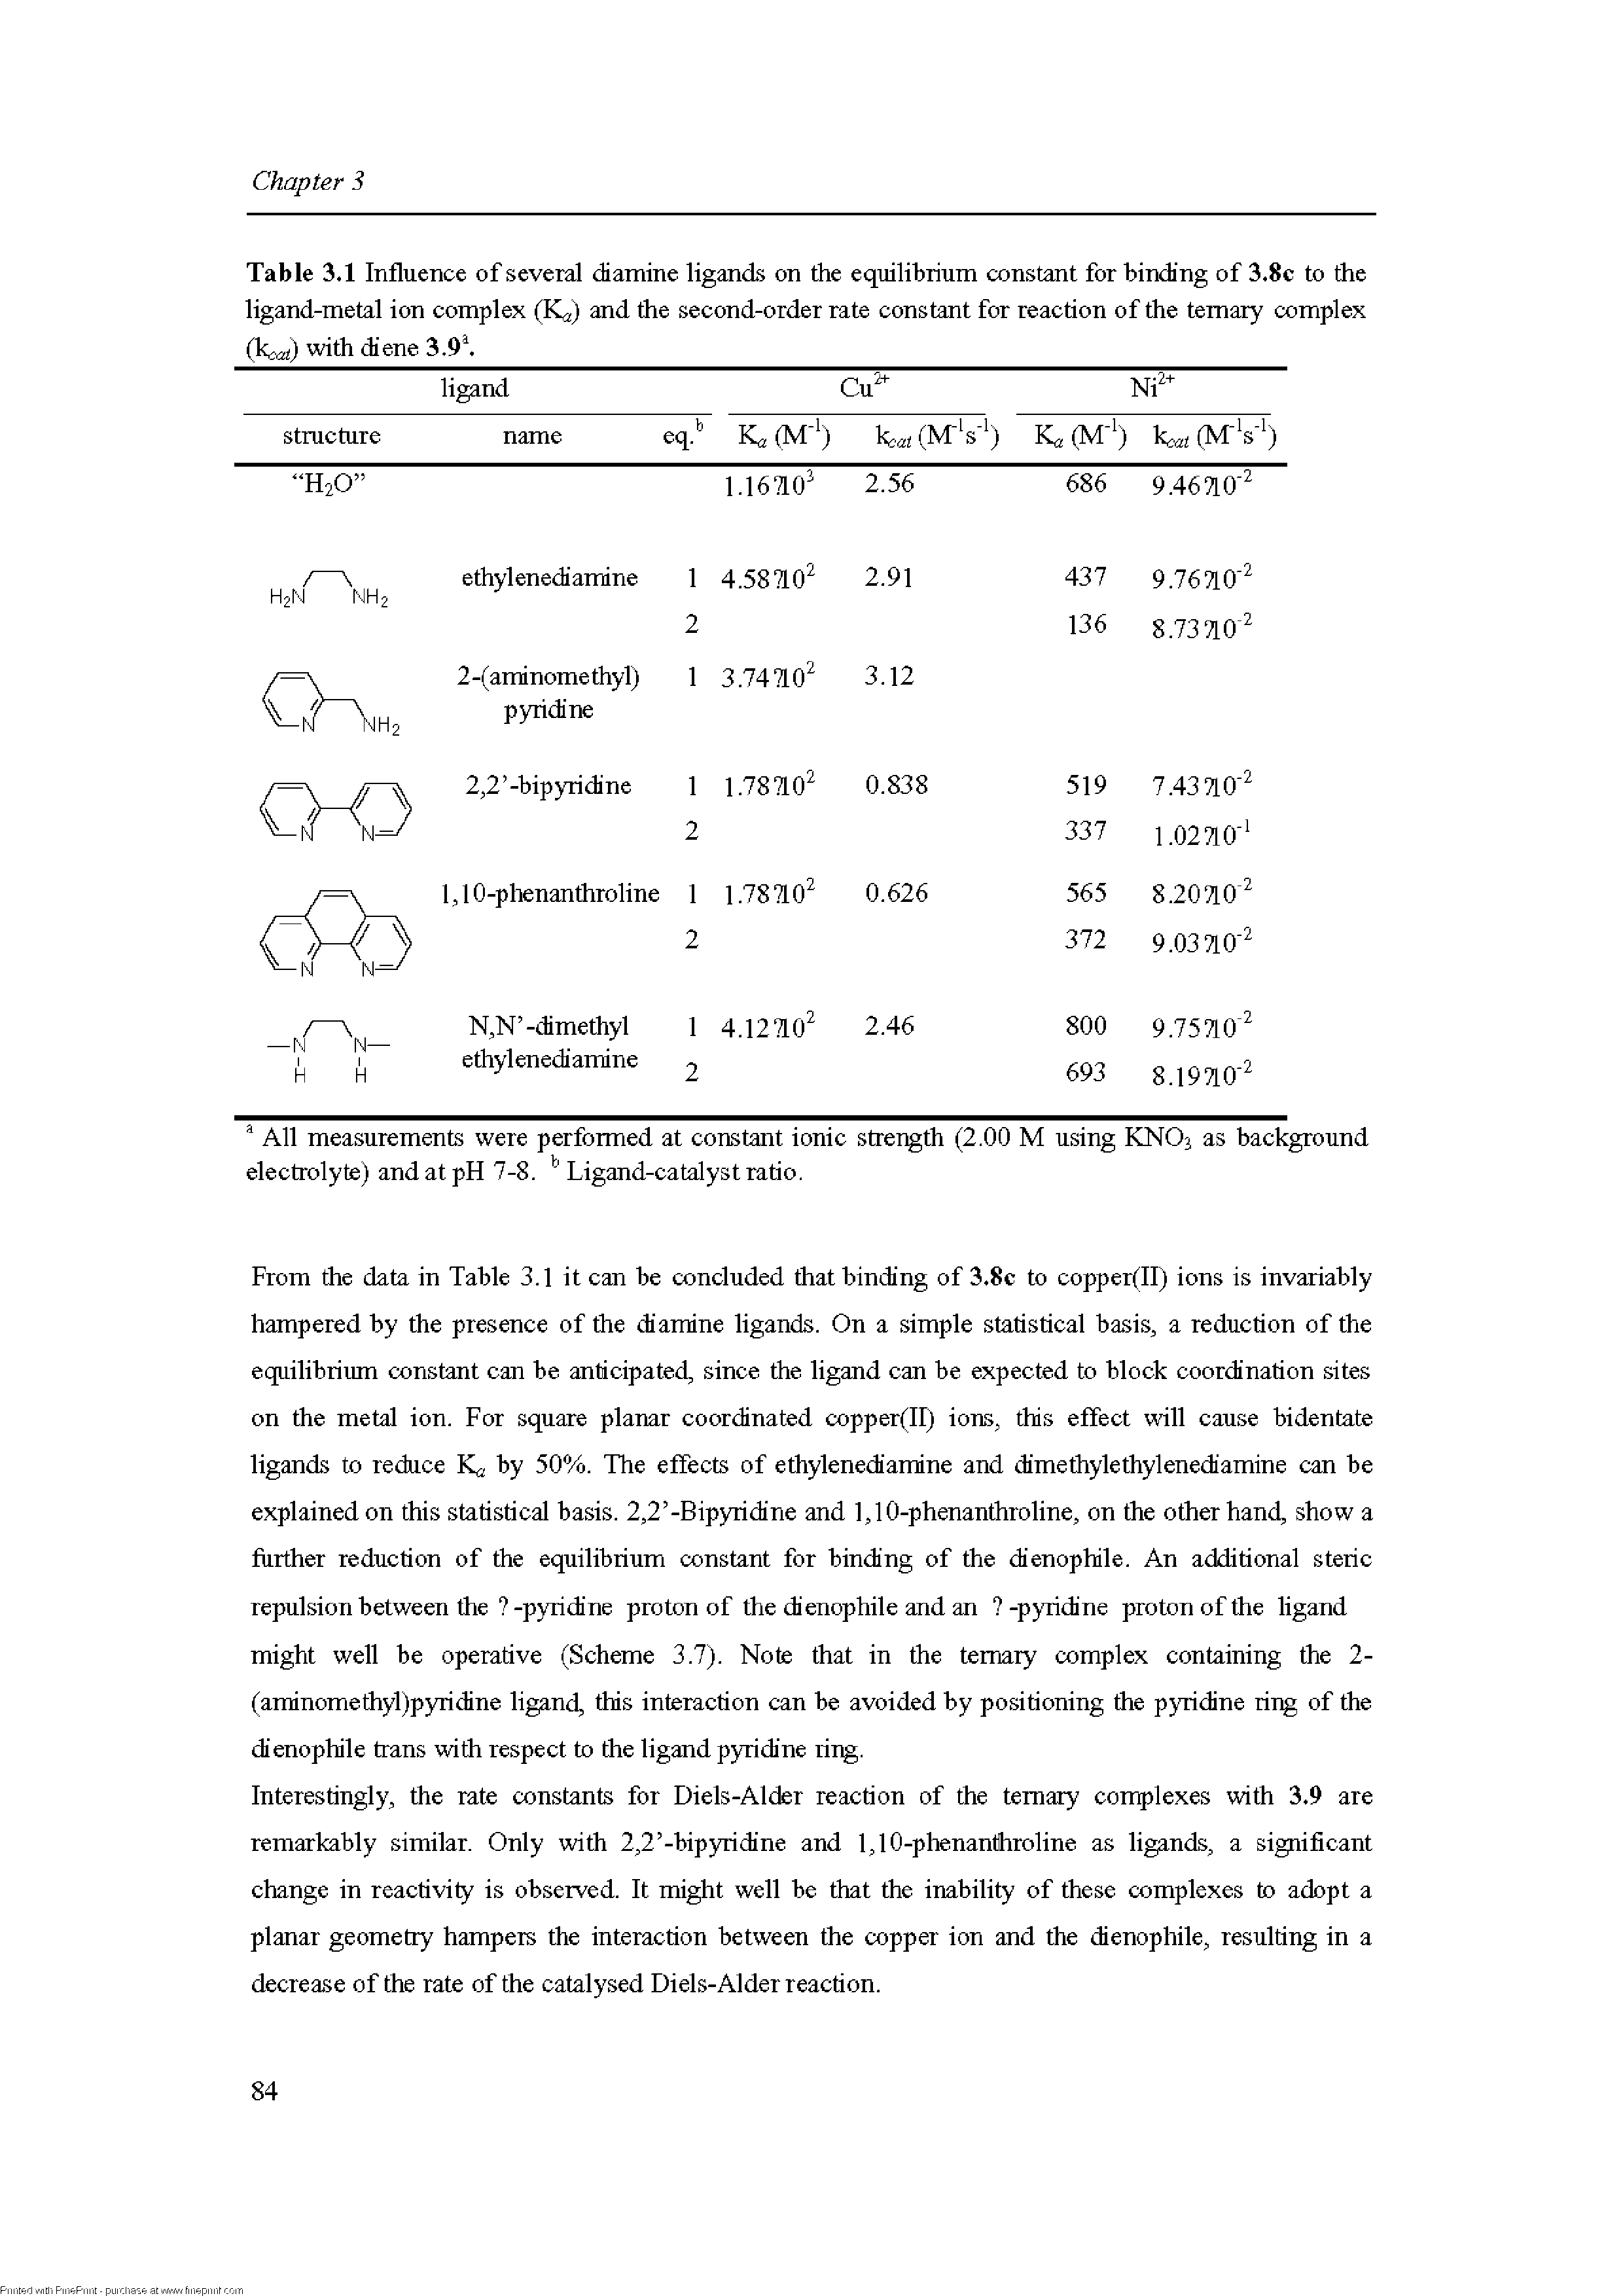 "Table 3.1 Influence of several <a href=""/info/diamine_ligands"">diamine ligands</a> on the <a href=""/info/equilibrium_constant"">equilibrium constant</a> for binding of 3.8c to the <a href=""/info/metal_ligand"">ligand-metal</a> ion complex (Ka) and the <a href=""/info/rate_constant_second_order"">second-order rate constant</a> for reaction of the <a href=""/info/ternary_complex"">ternary complex</a> with diene 3.9"